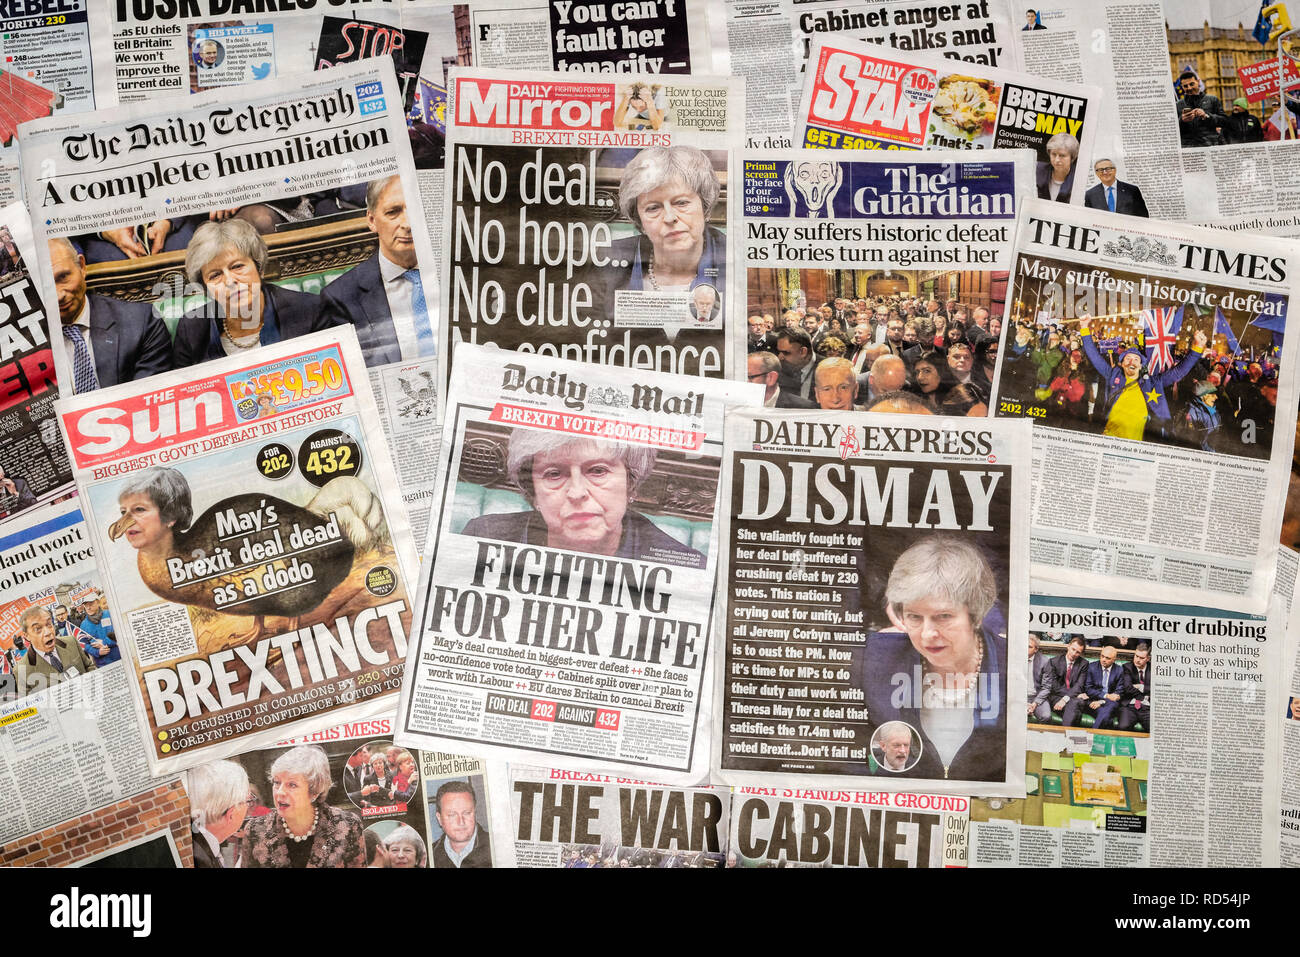 British newspaper front pages reporting that Prime Minister Theresa May's Brexit Deal has been rejected in parliament - Stock Image